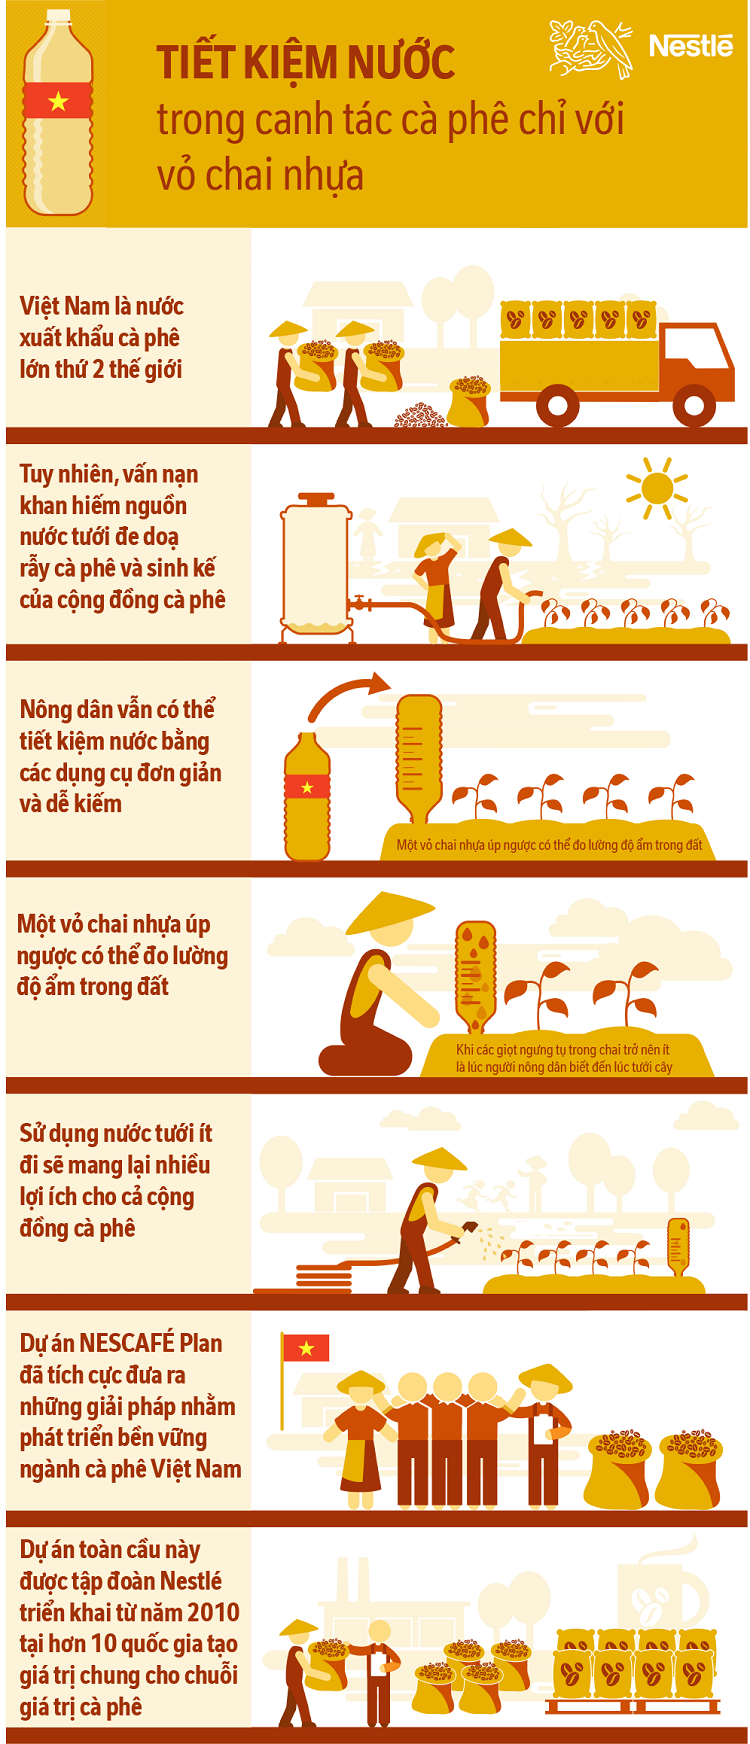 infographic-Chai-nuoc-up-nguoc-1817-1624